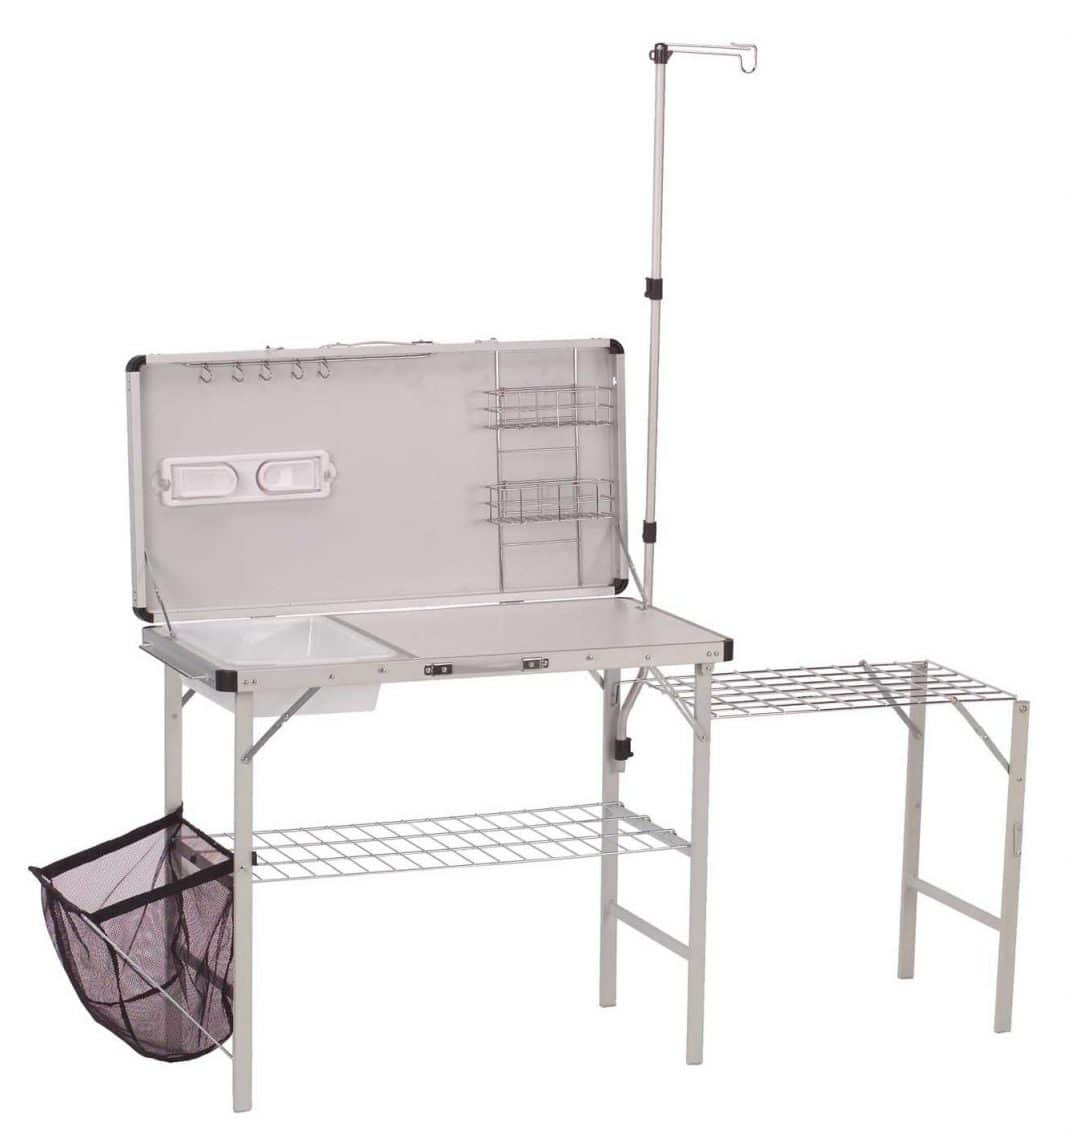 Foldable kitchen set for camping